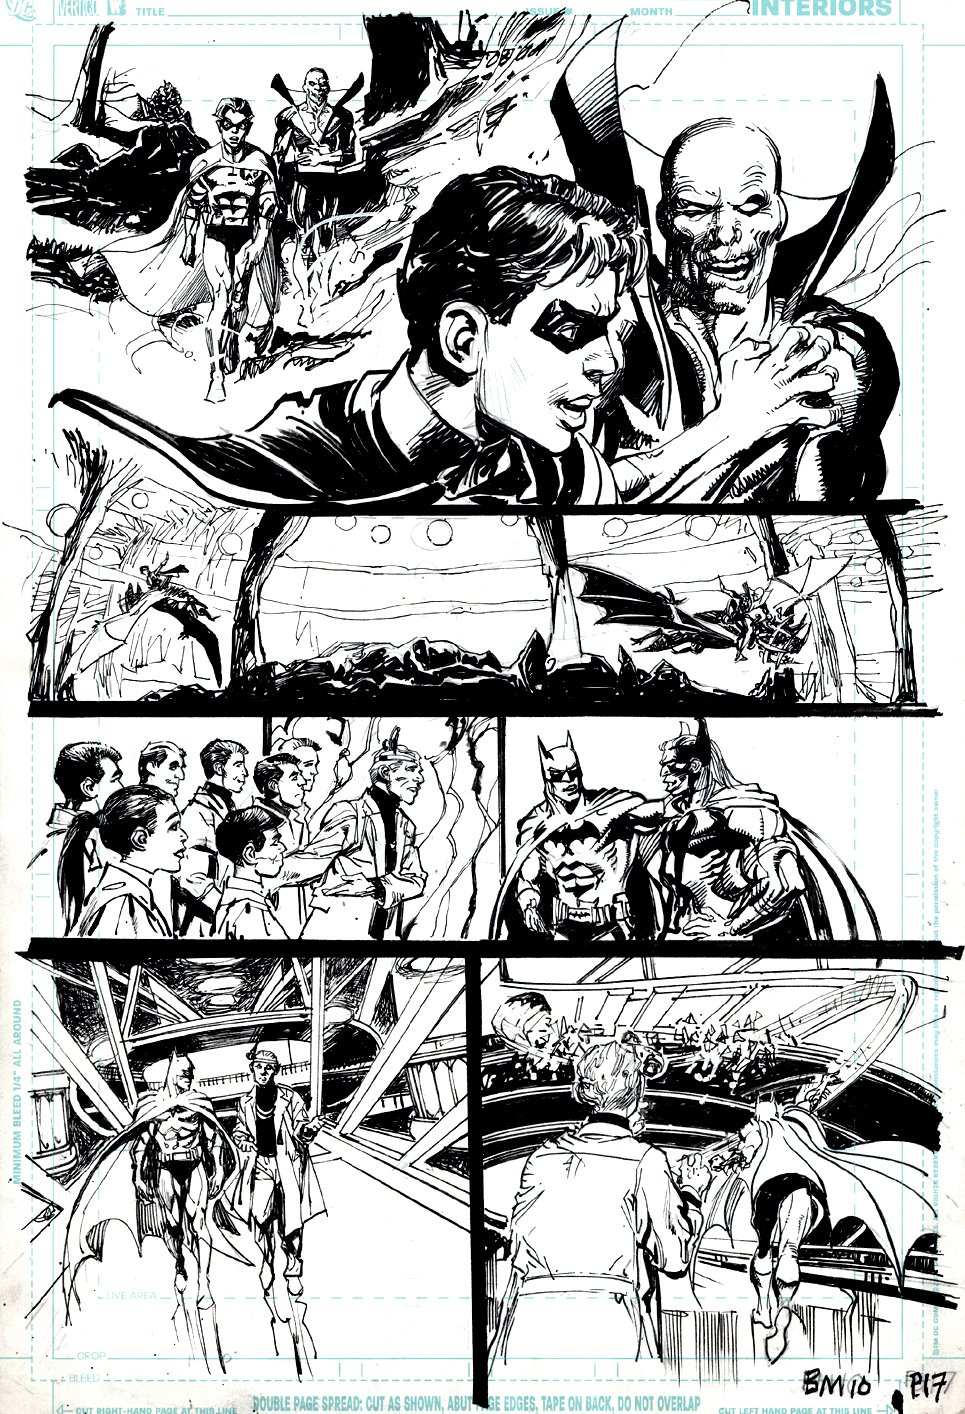 Batman: Odyssey #4 p 17 (BATMAN, ROBIN, DEADMAN, BAT-MAN! BILL SIENKIEWICZ & ADAMS INKS!) 2011